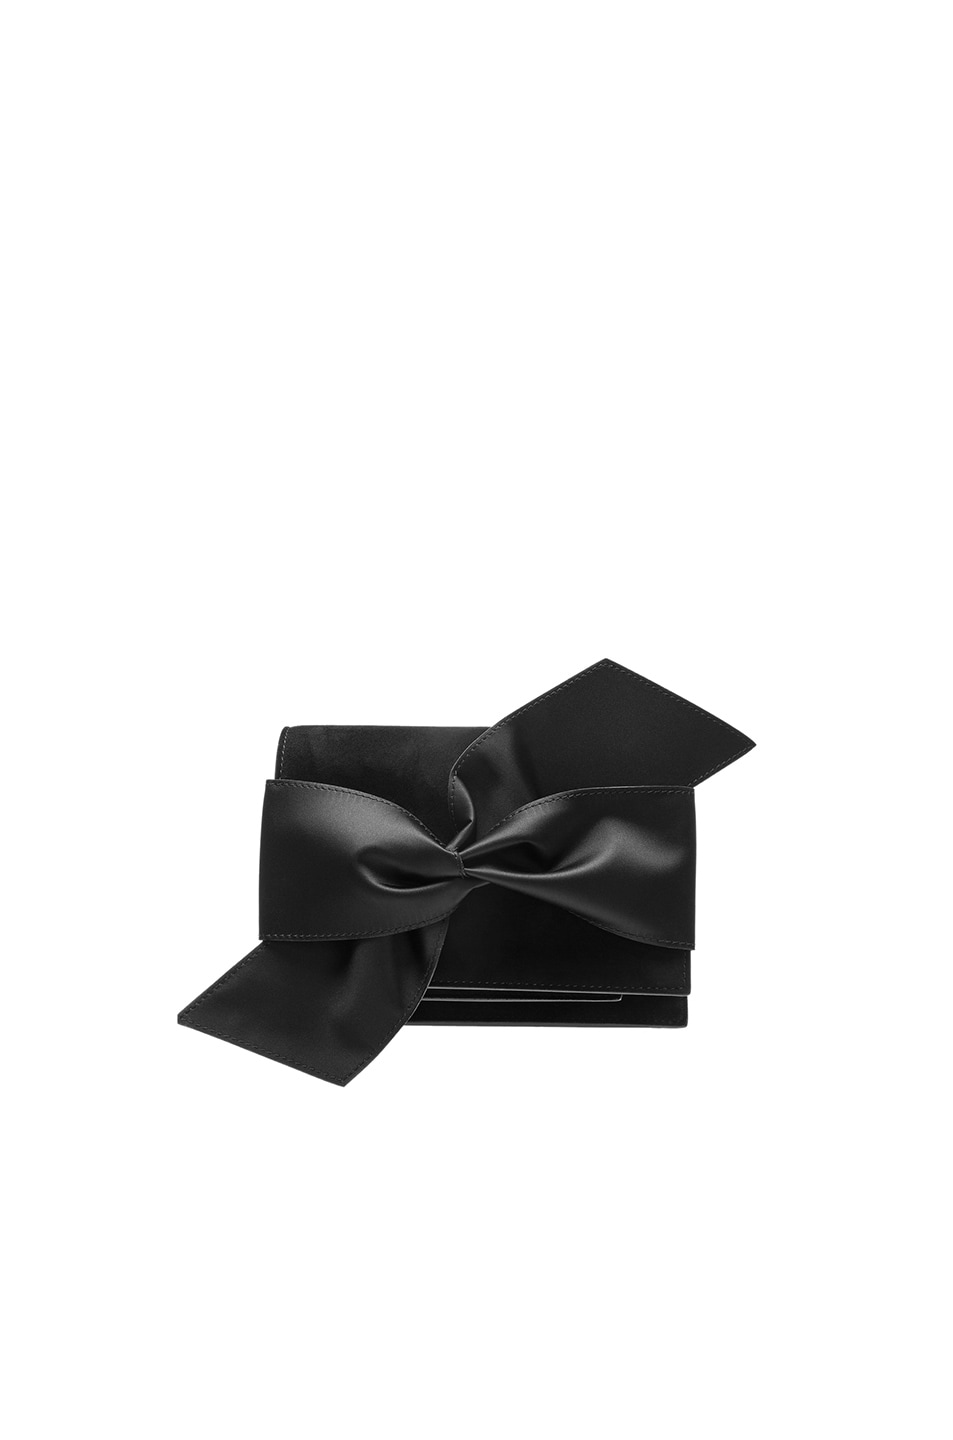 Victoria Beckham Mini Bow Clutch in Black bedWG